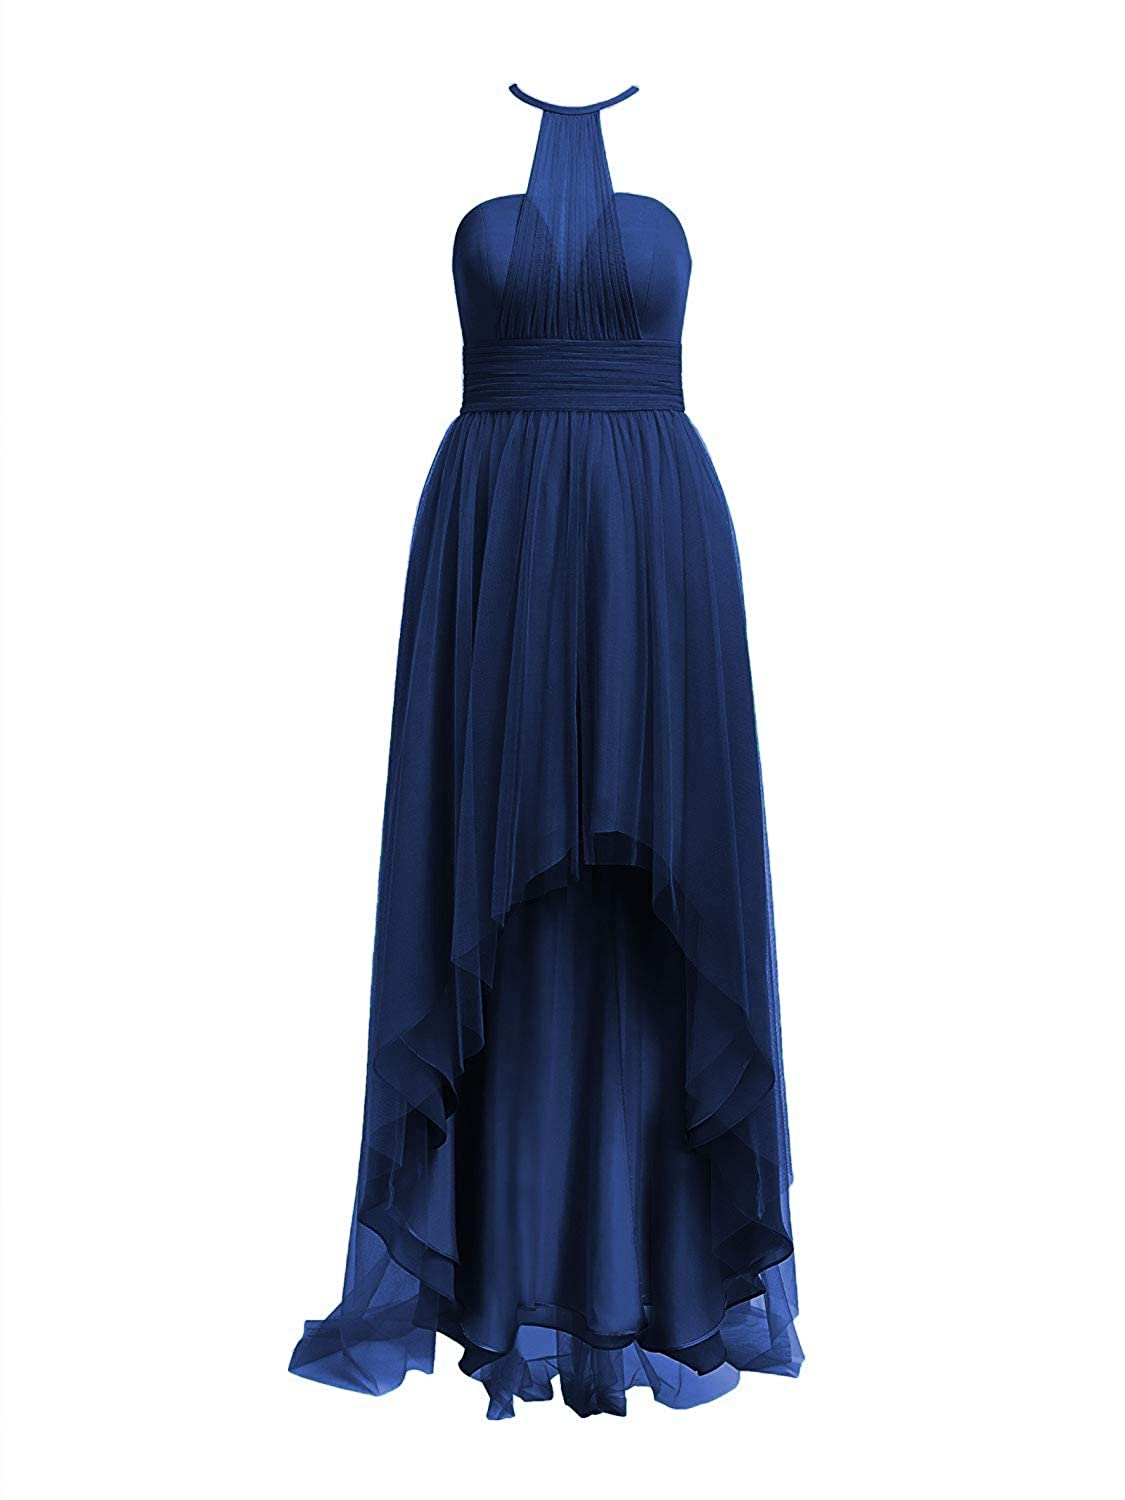 Royal bluee Tulle Bridesmaid Dresses High Low Halter Prom Party Gowns Backless Evening Formal Dress